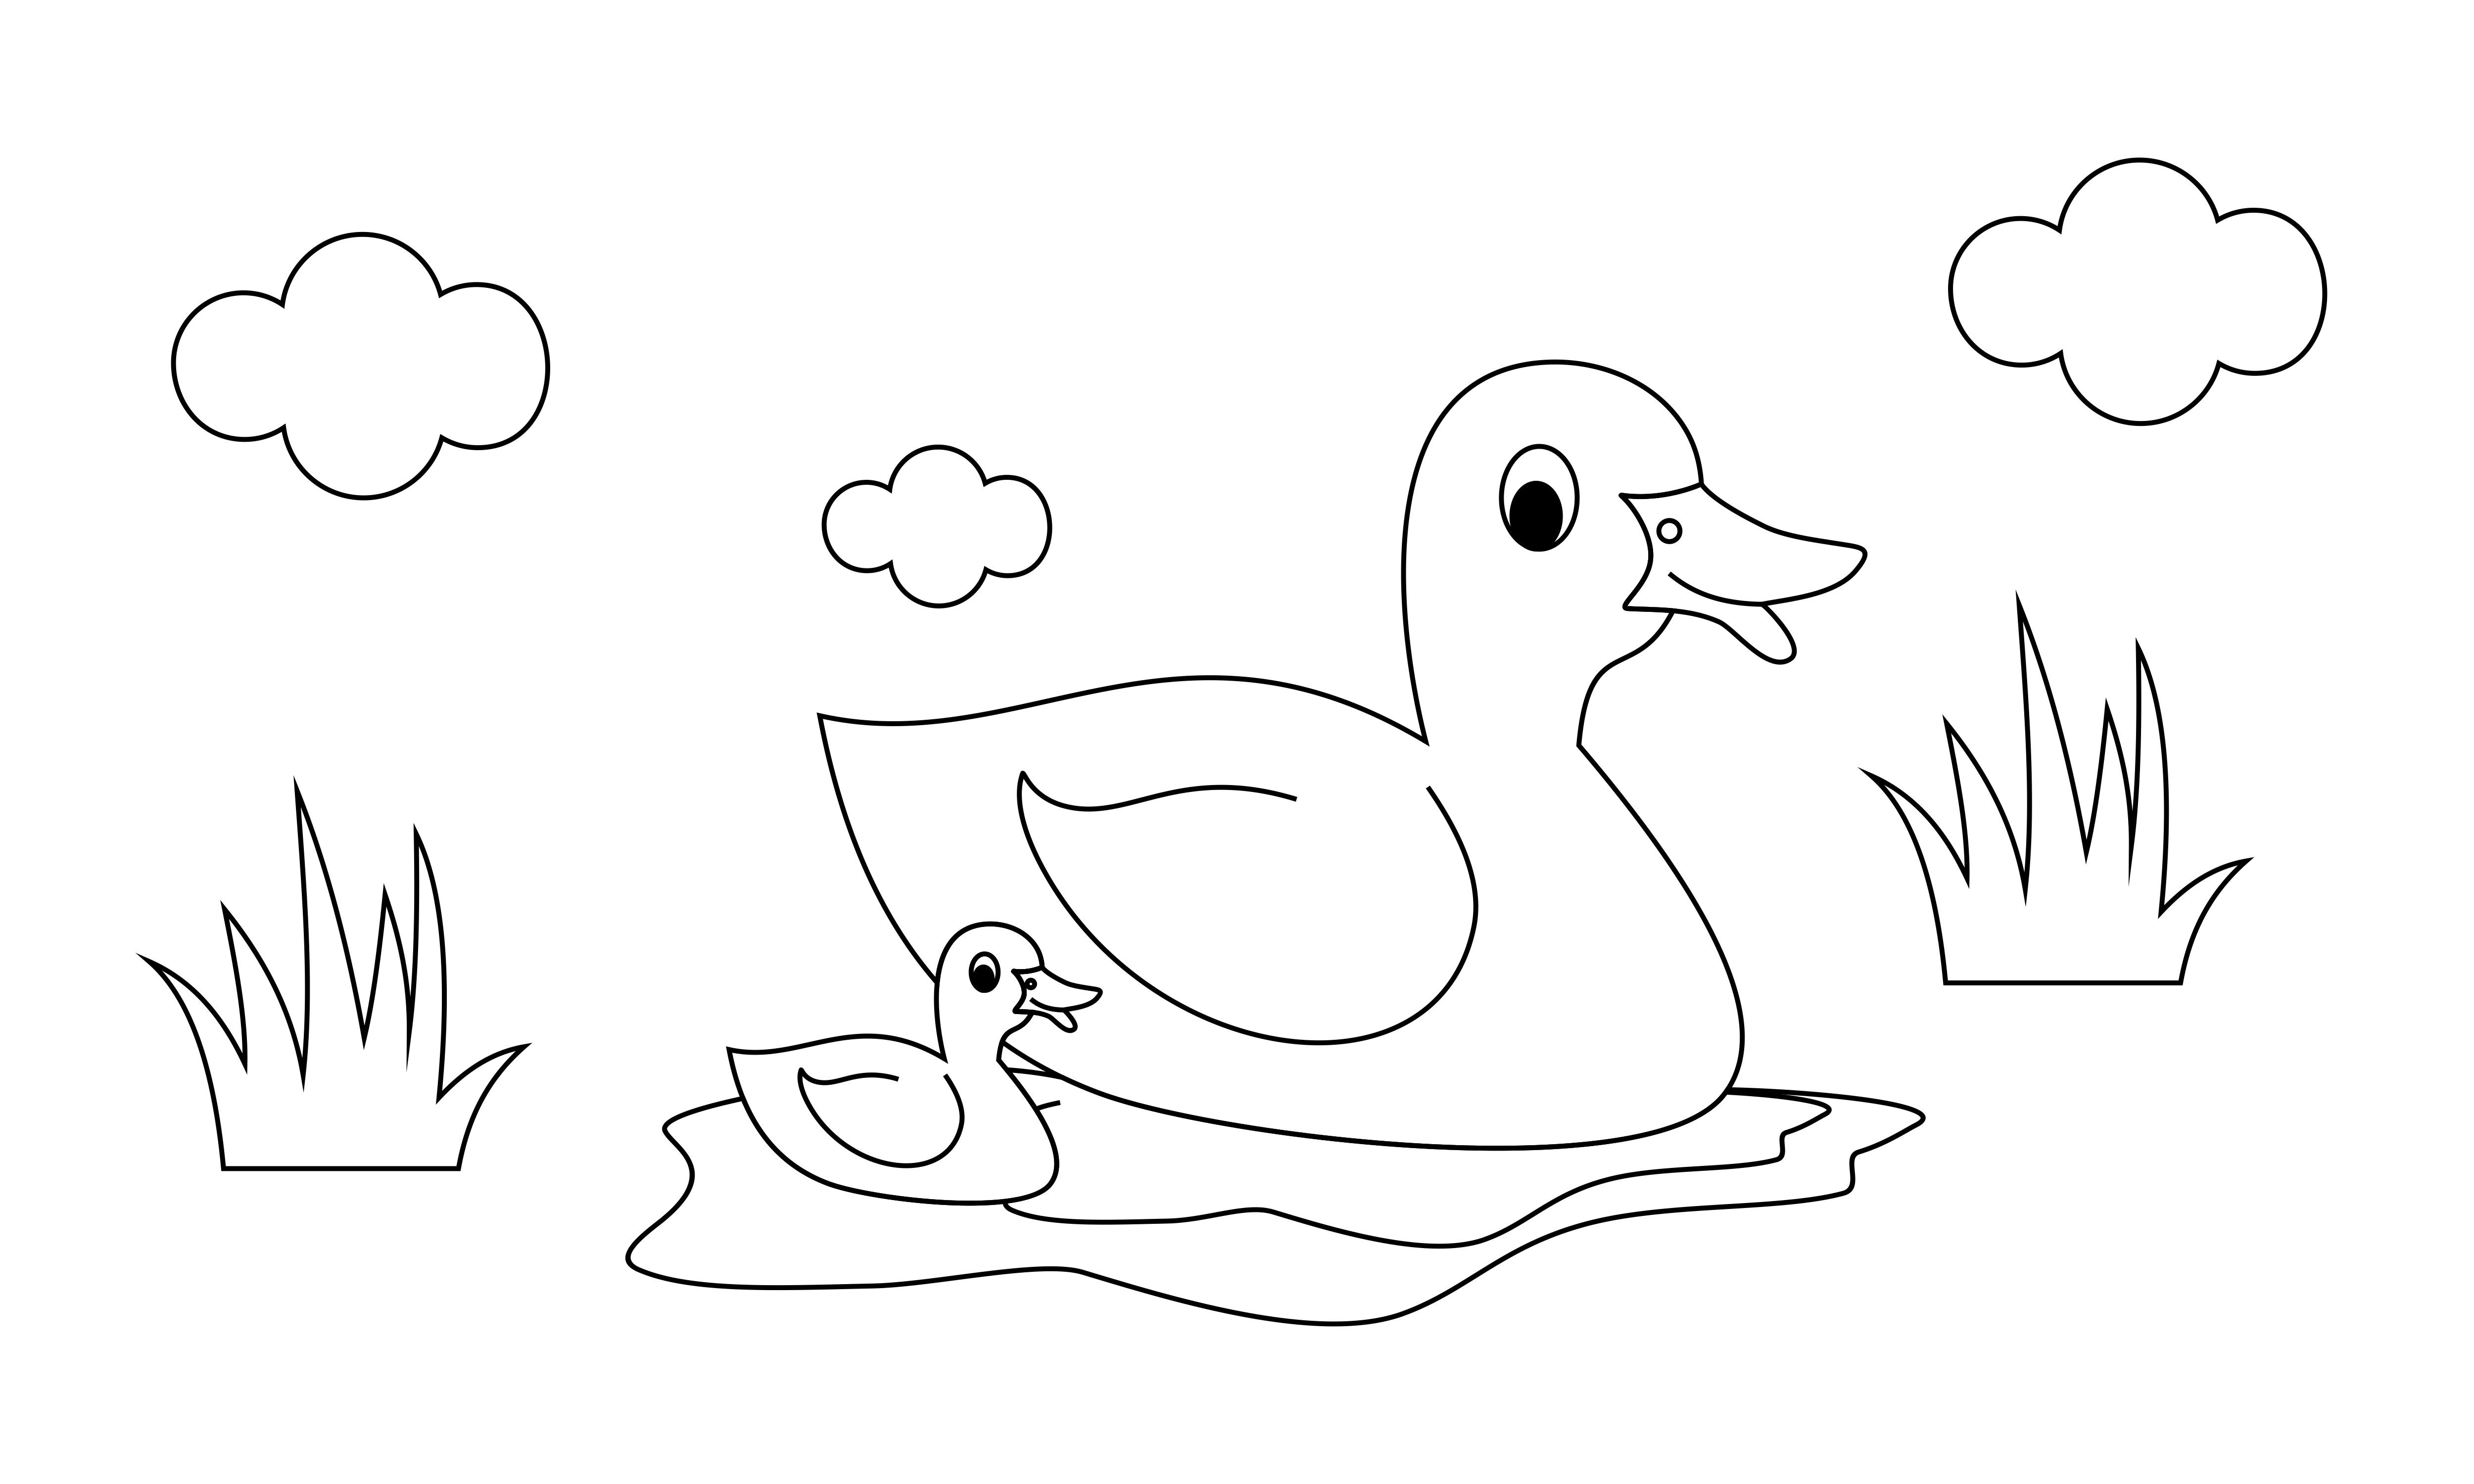 - Coloring Book Animals To Educate Kids. (Graphic) By DEEMKA STUDIO